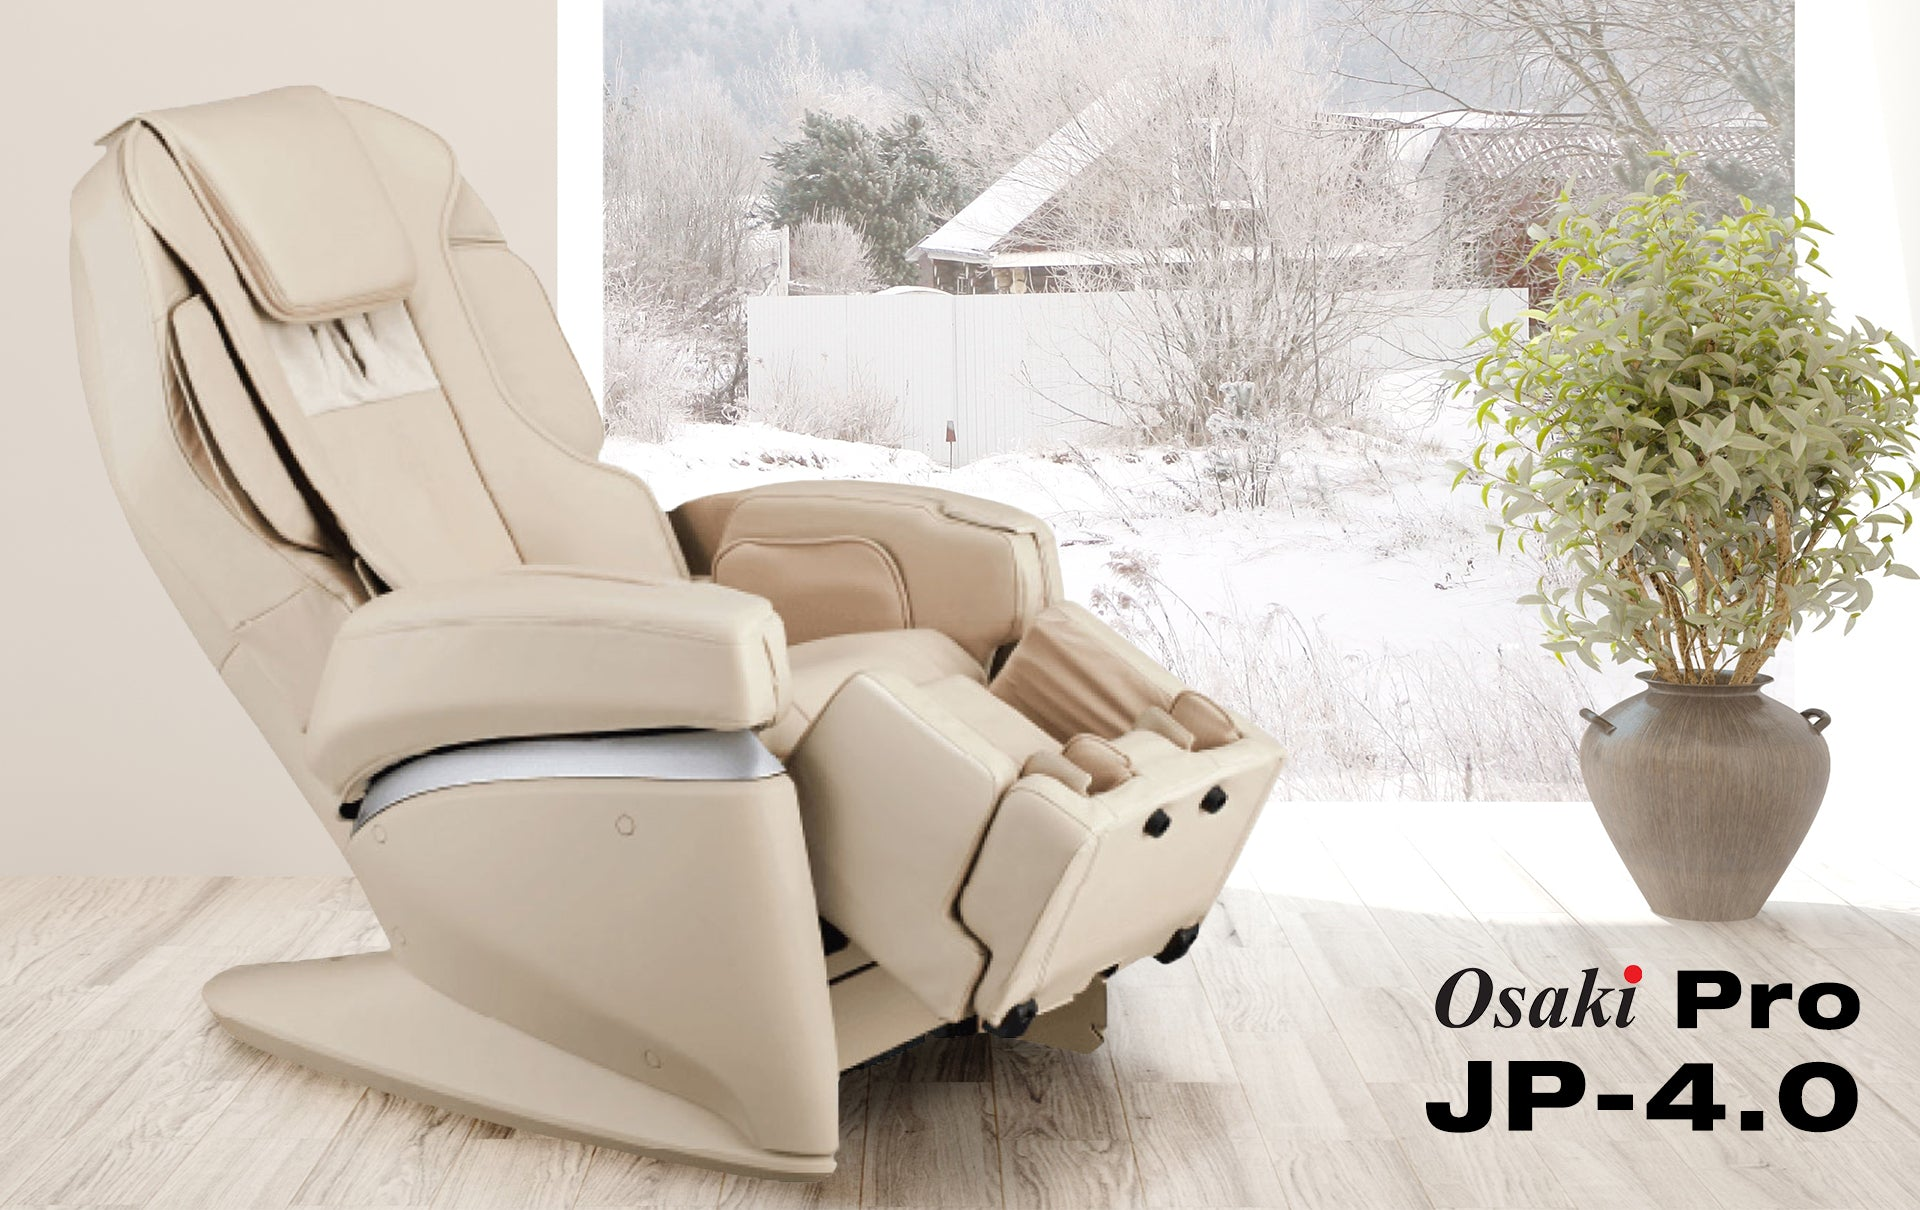 Osaki Pro JP-4.0 Massage chair BANNER